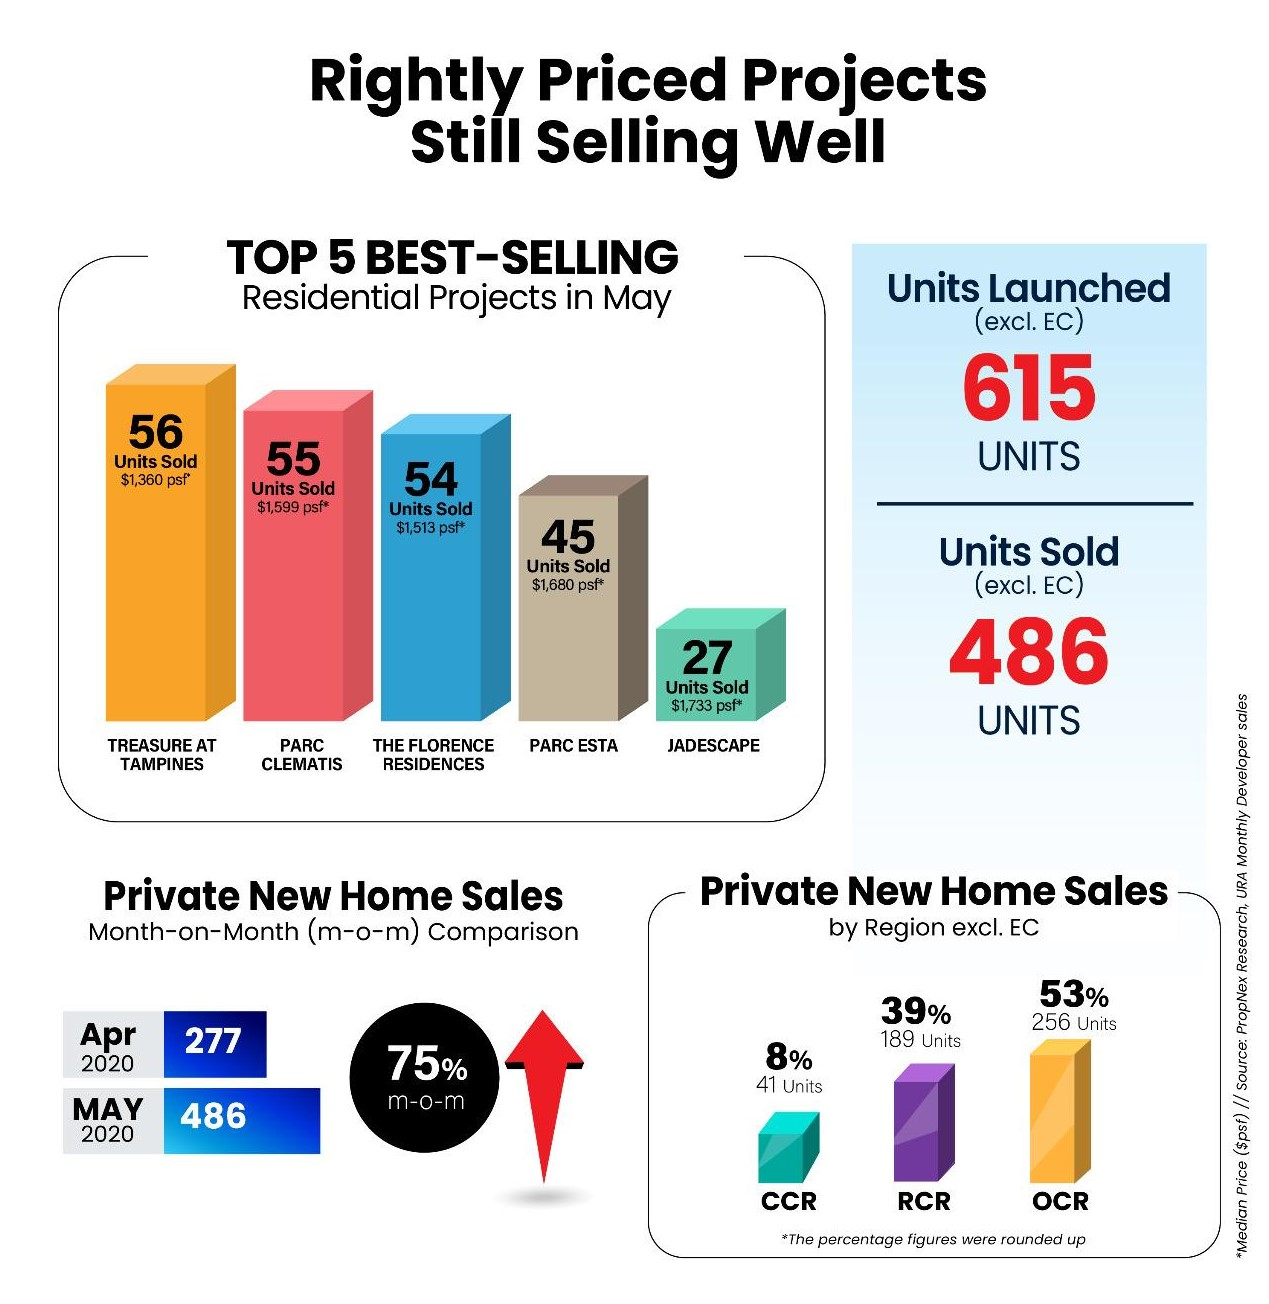 property-investor-singapore-rightly-priced-projects-still-selling-well